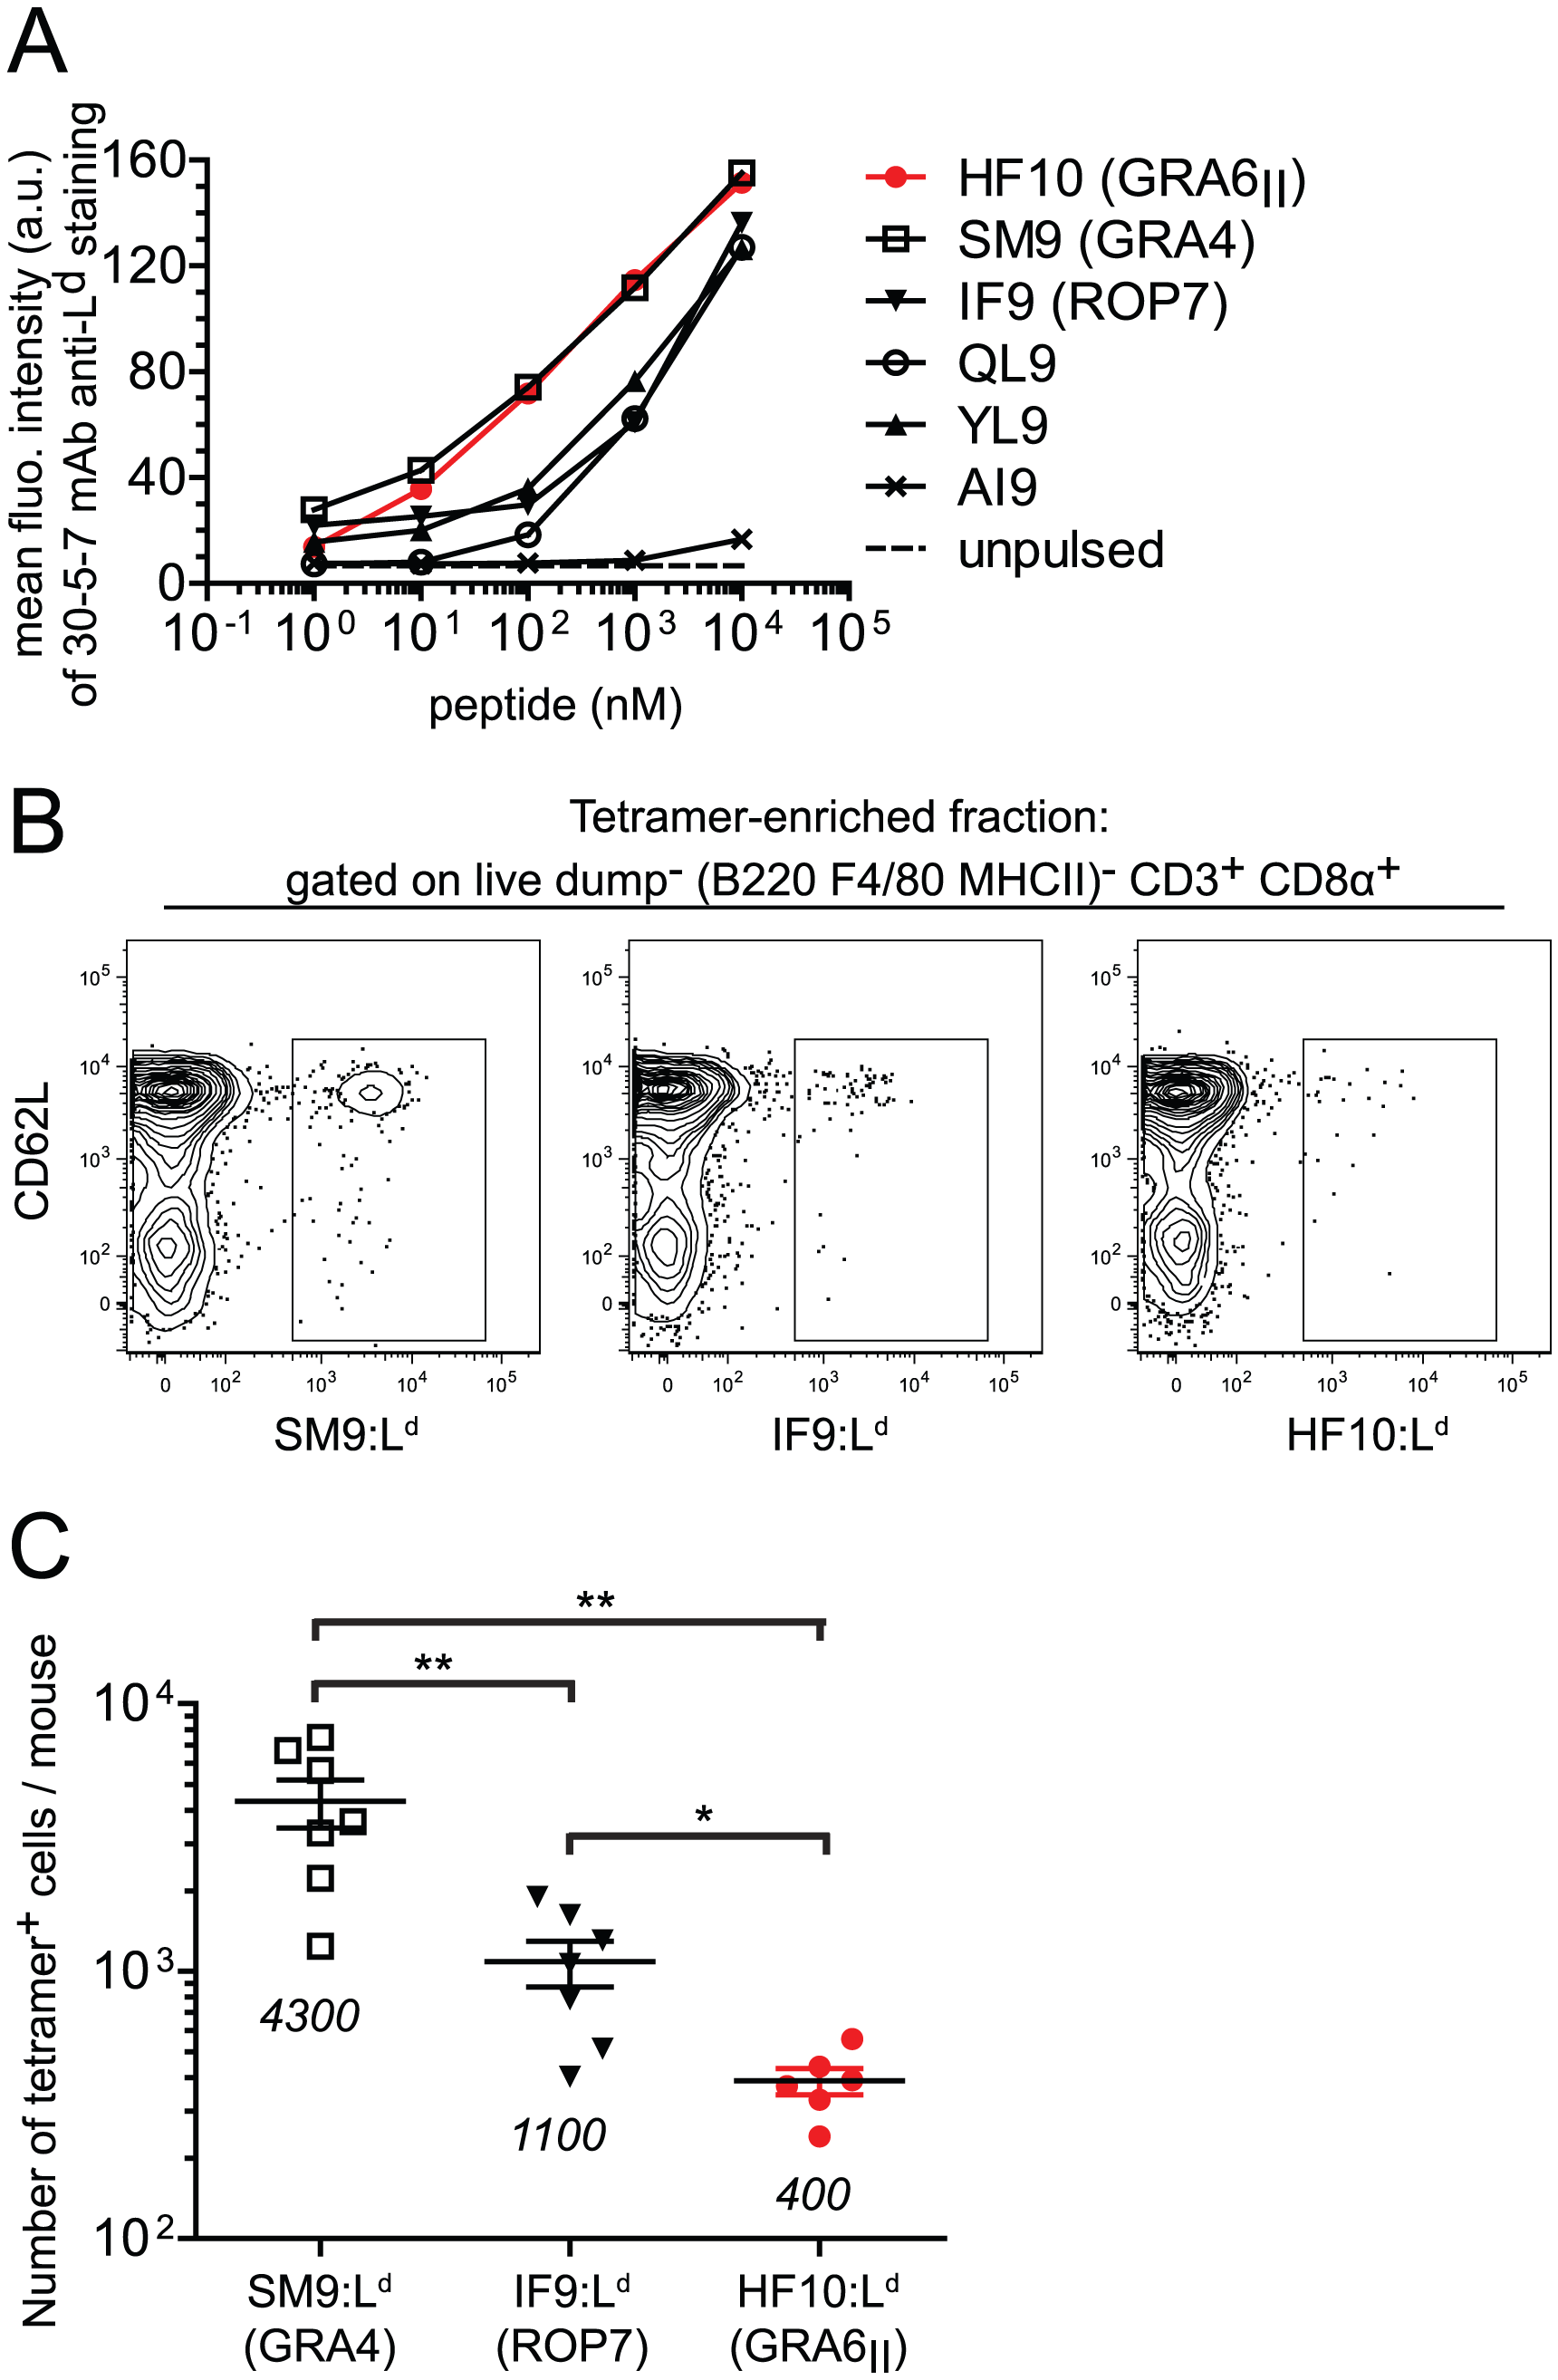 Immunodominance of GRA6<sub>II</sub>-derived HF10 cannot be explained by peptide affinity for L<sup>d</sup> or naïve T cell frequency.